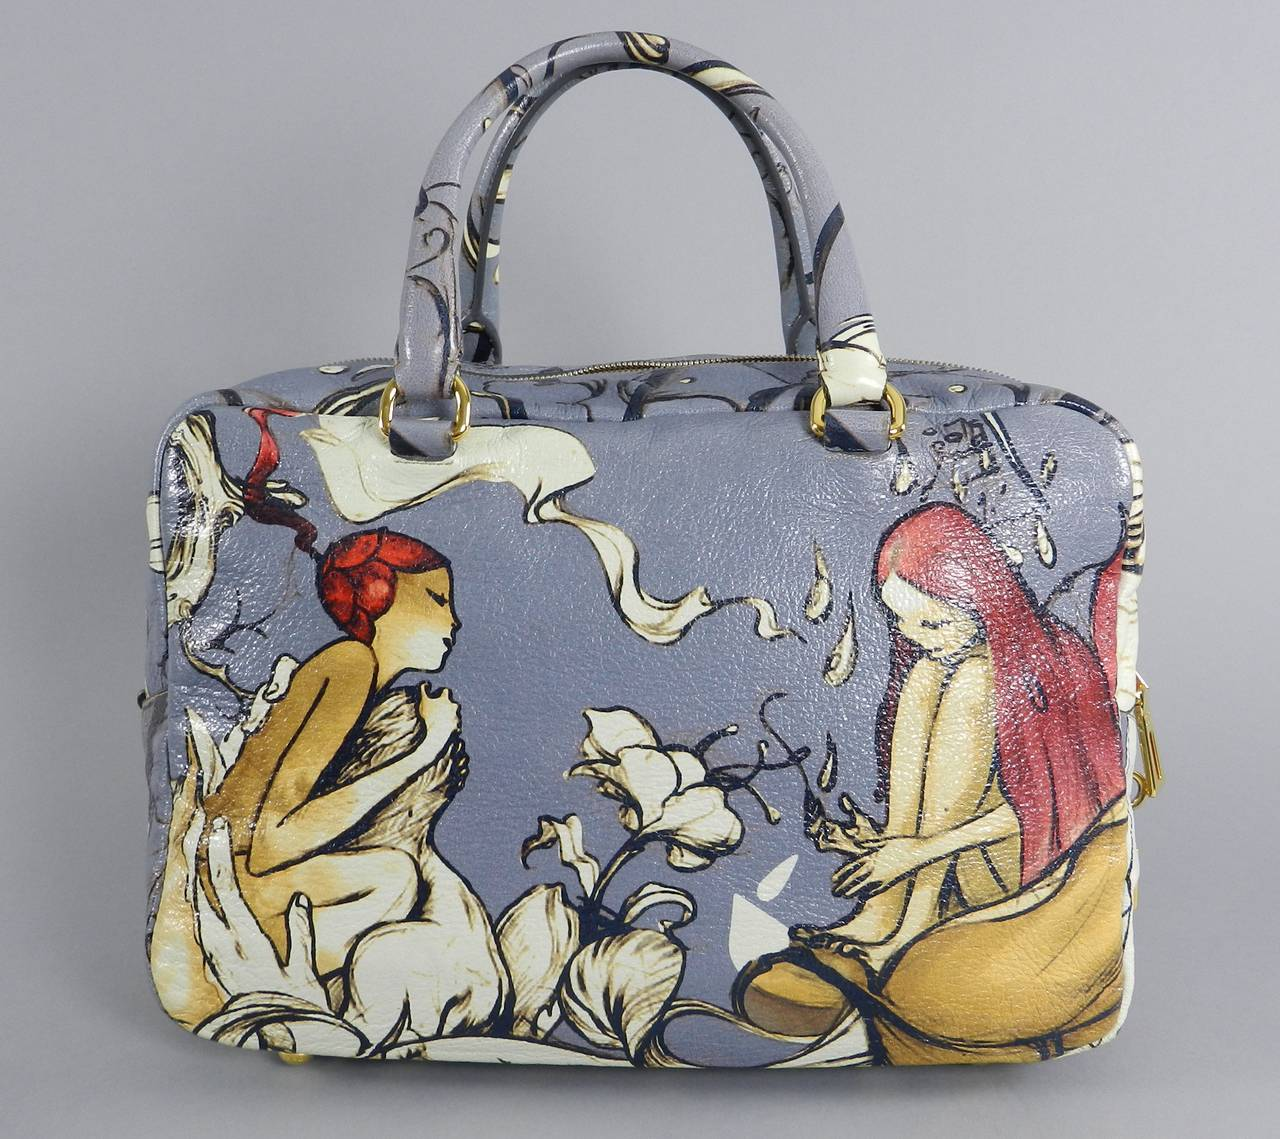 Prada Fairy Bag - Limitied Edition James Jean at 1stdibs